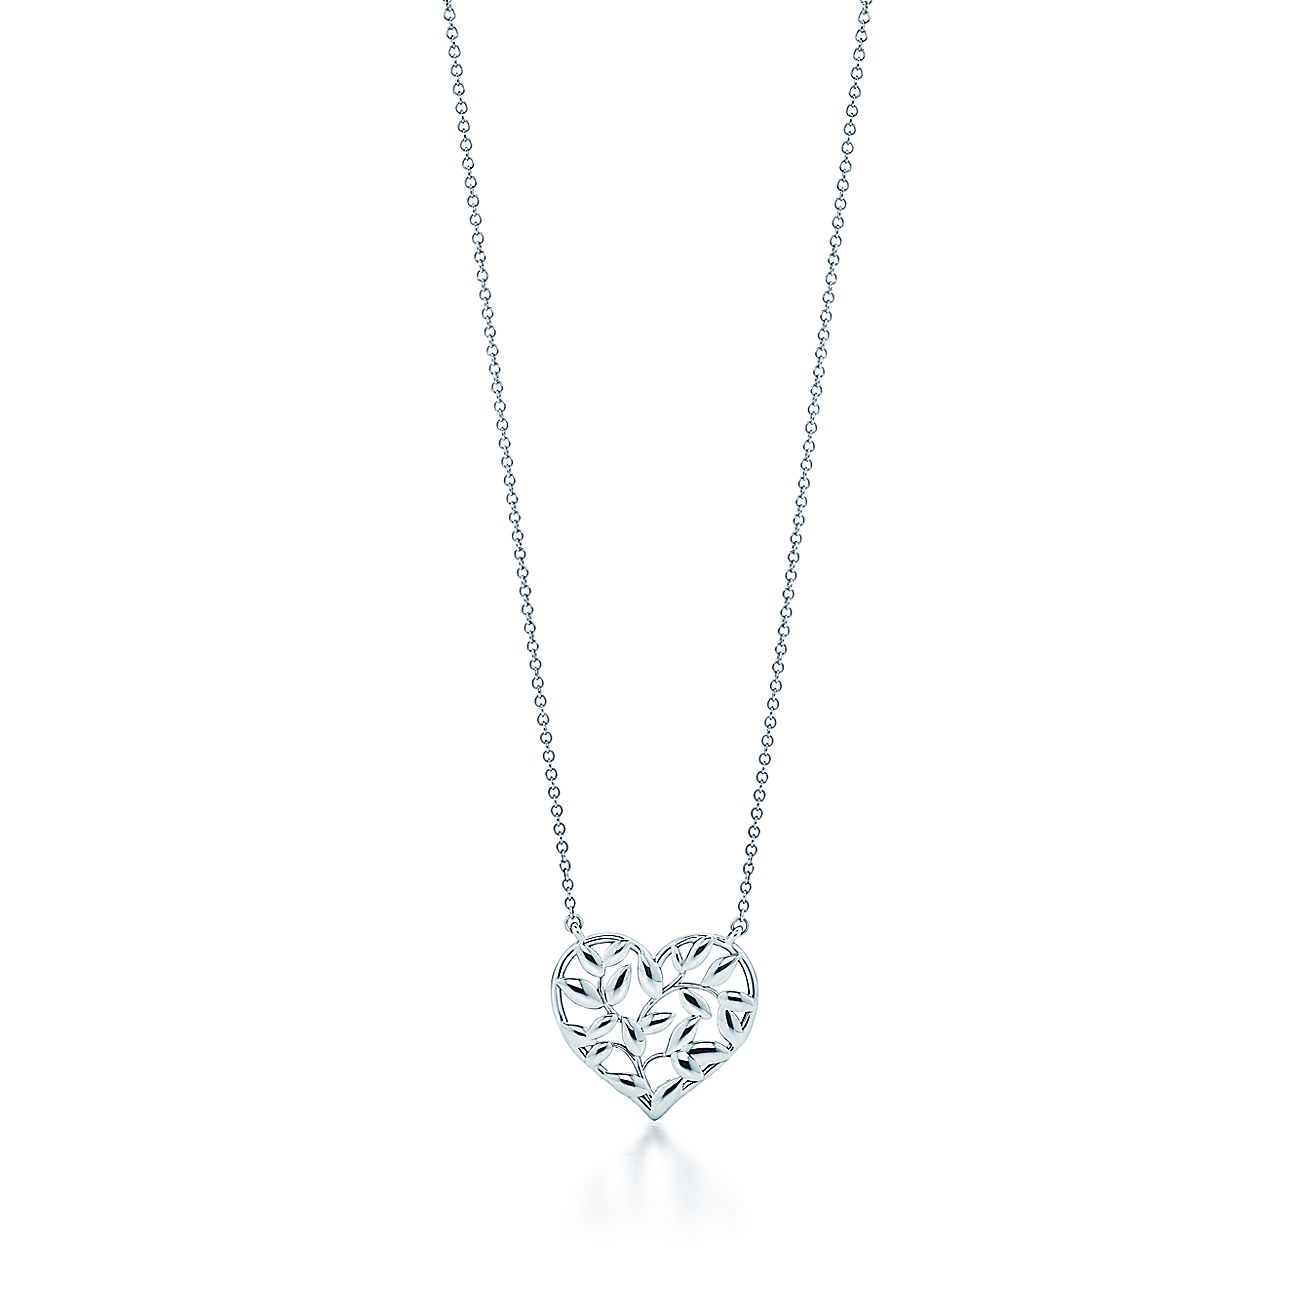 infinity silver kaystore necklace en diamonds tw heart ct mv zm sterling kay